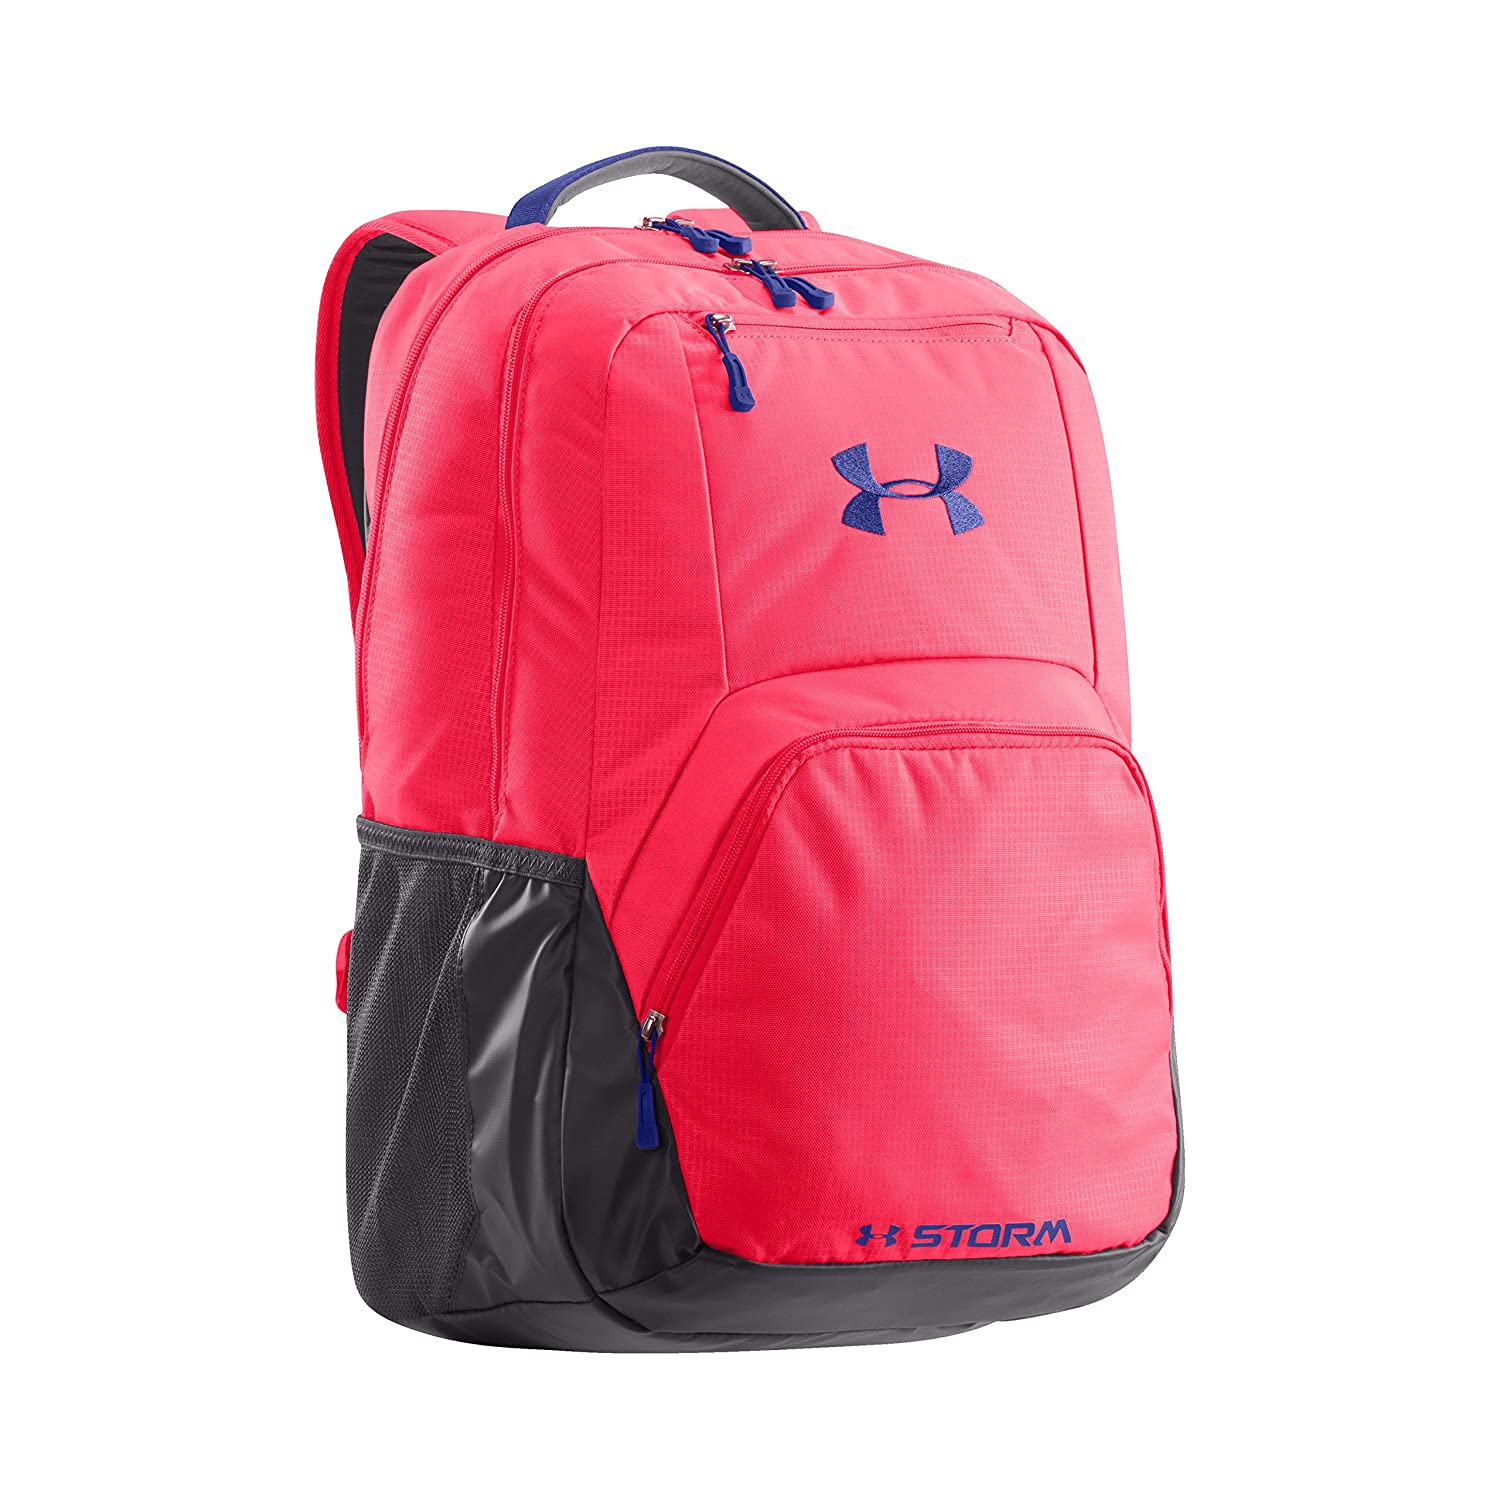 570ff76115 Amazon.com : Under Armour Women's Exeter Backpack, Neo Pulse (678 ...